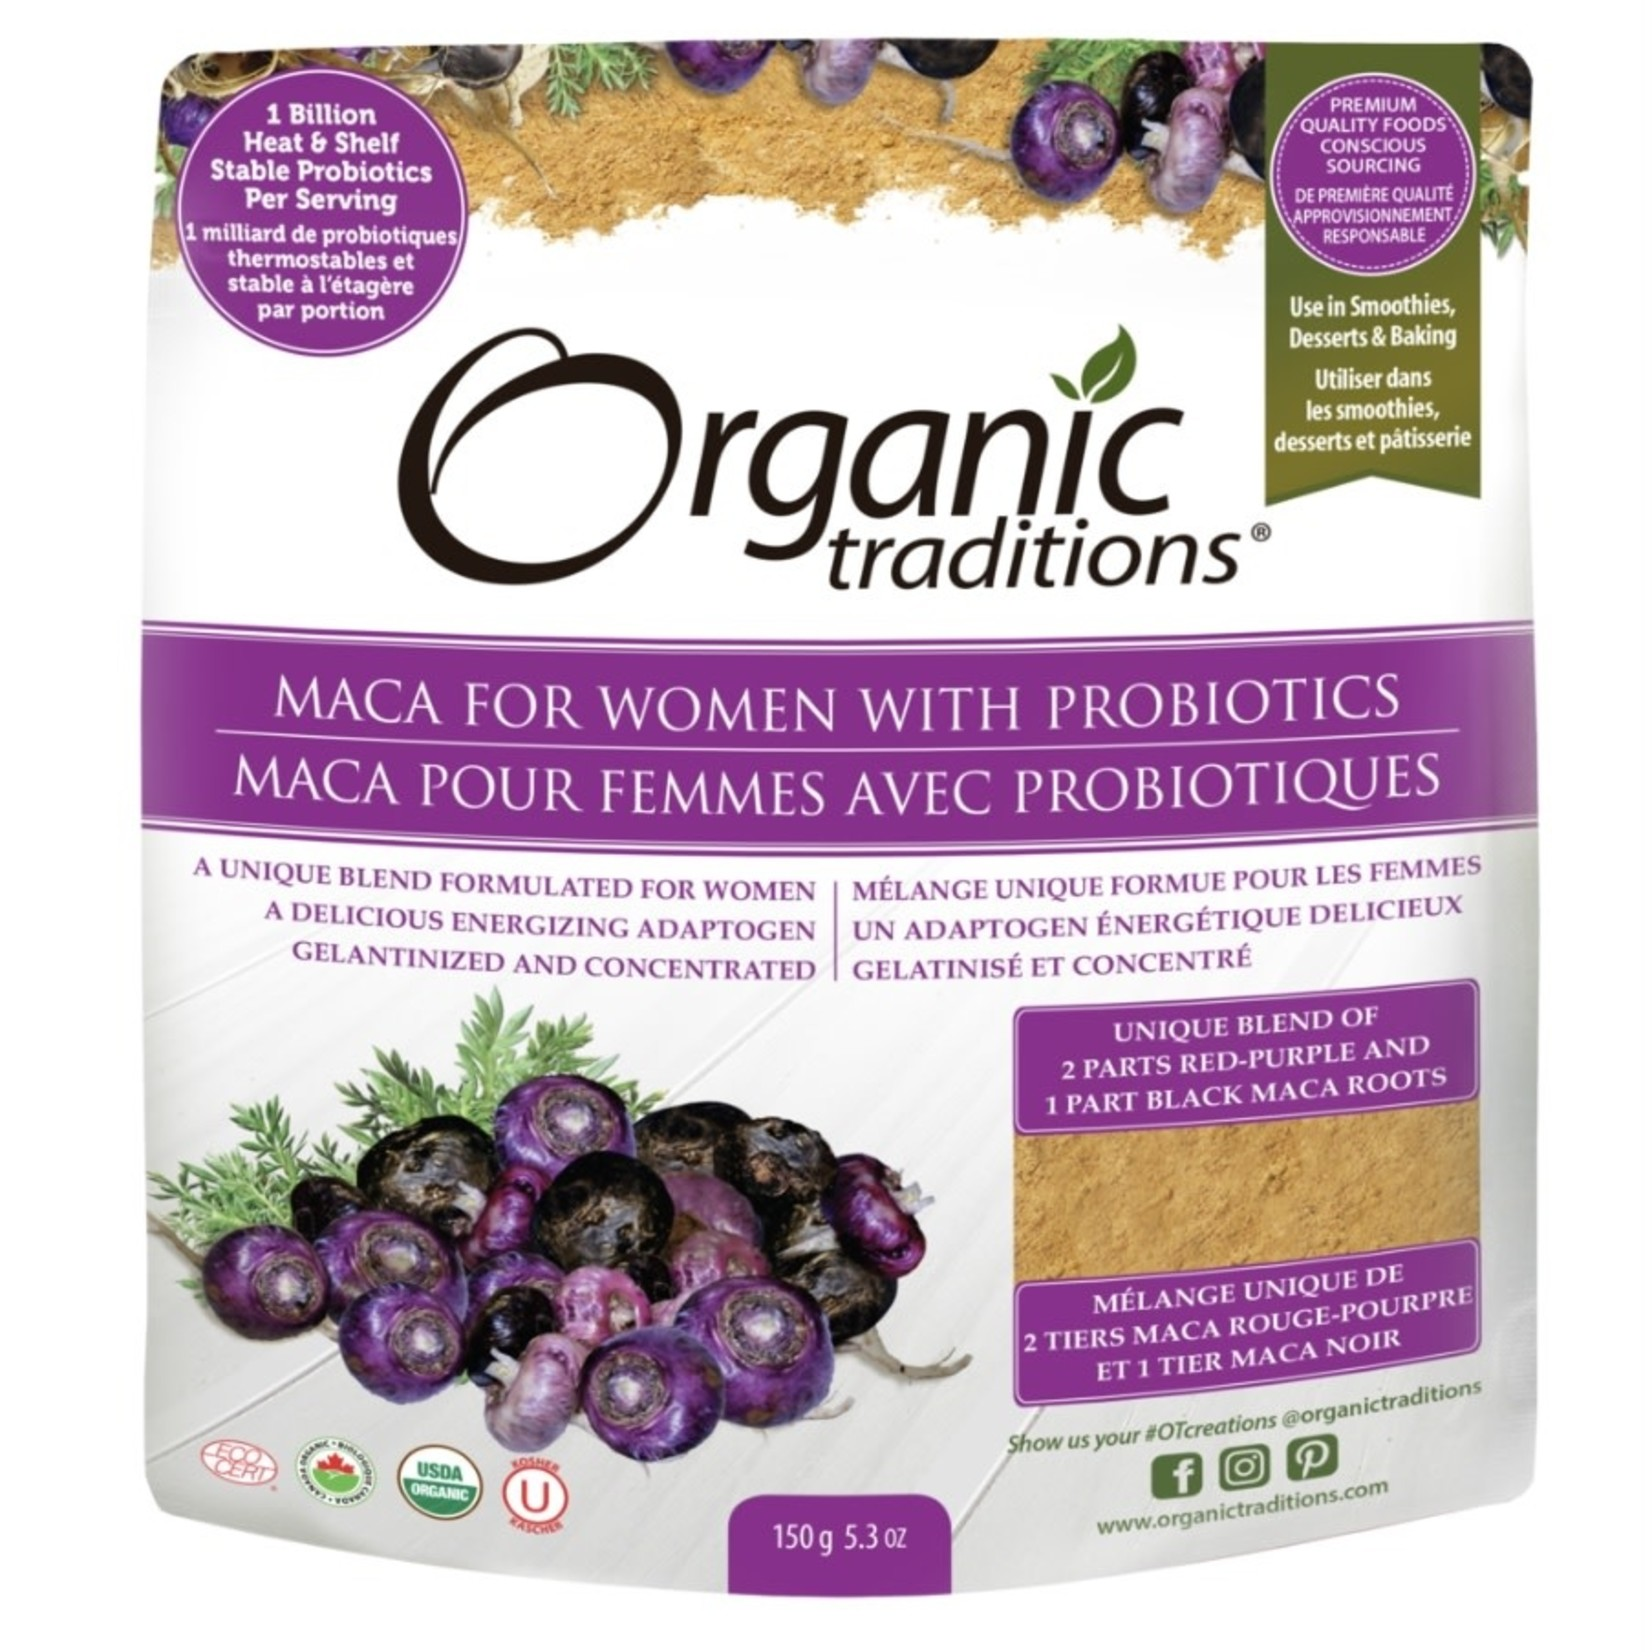 Organic Traditions Organic Traditions Maca For Women With Probiotic